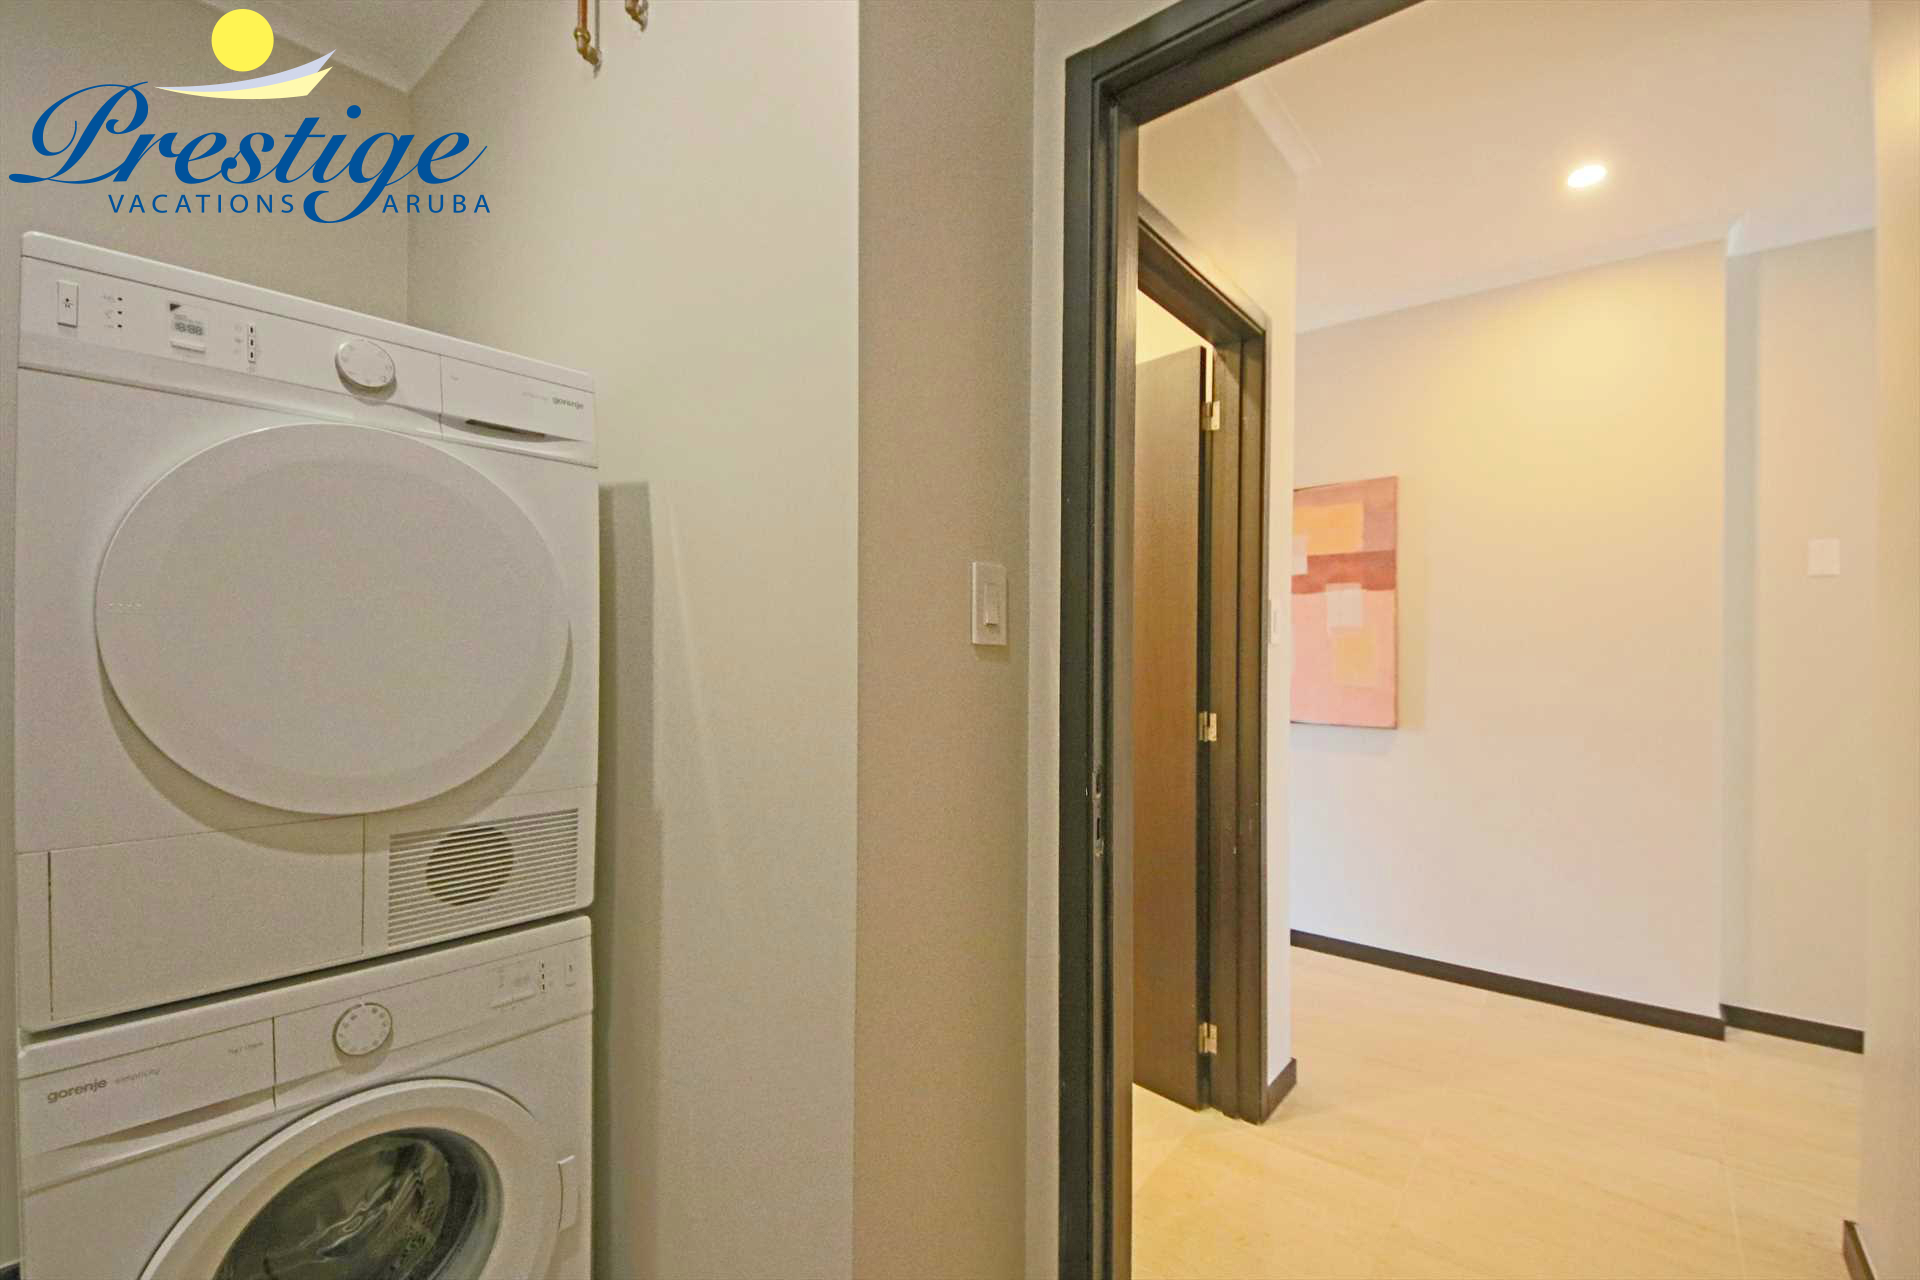 The laundry room with washer and dryer